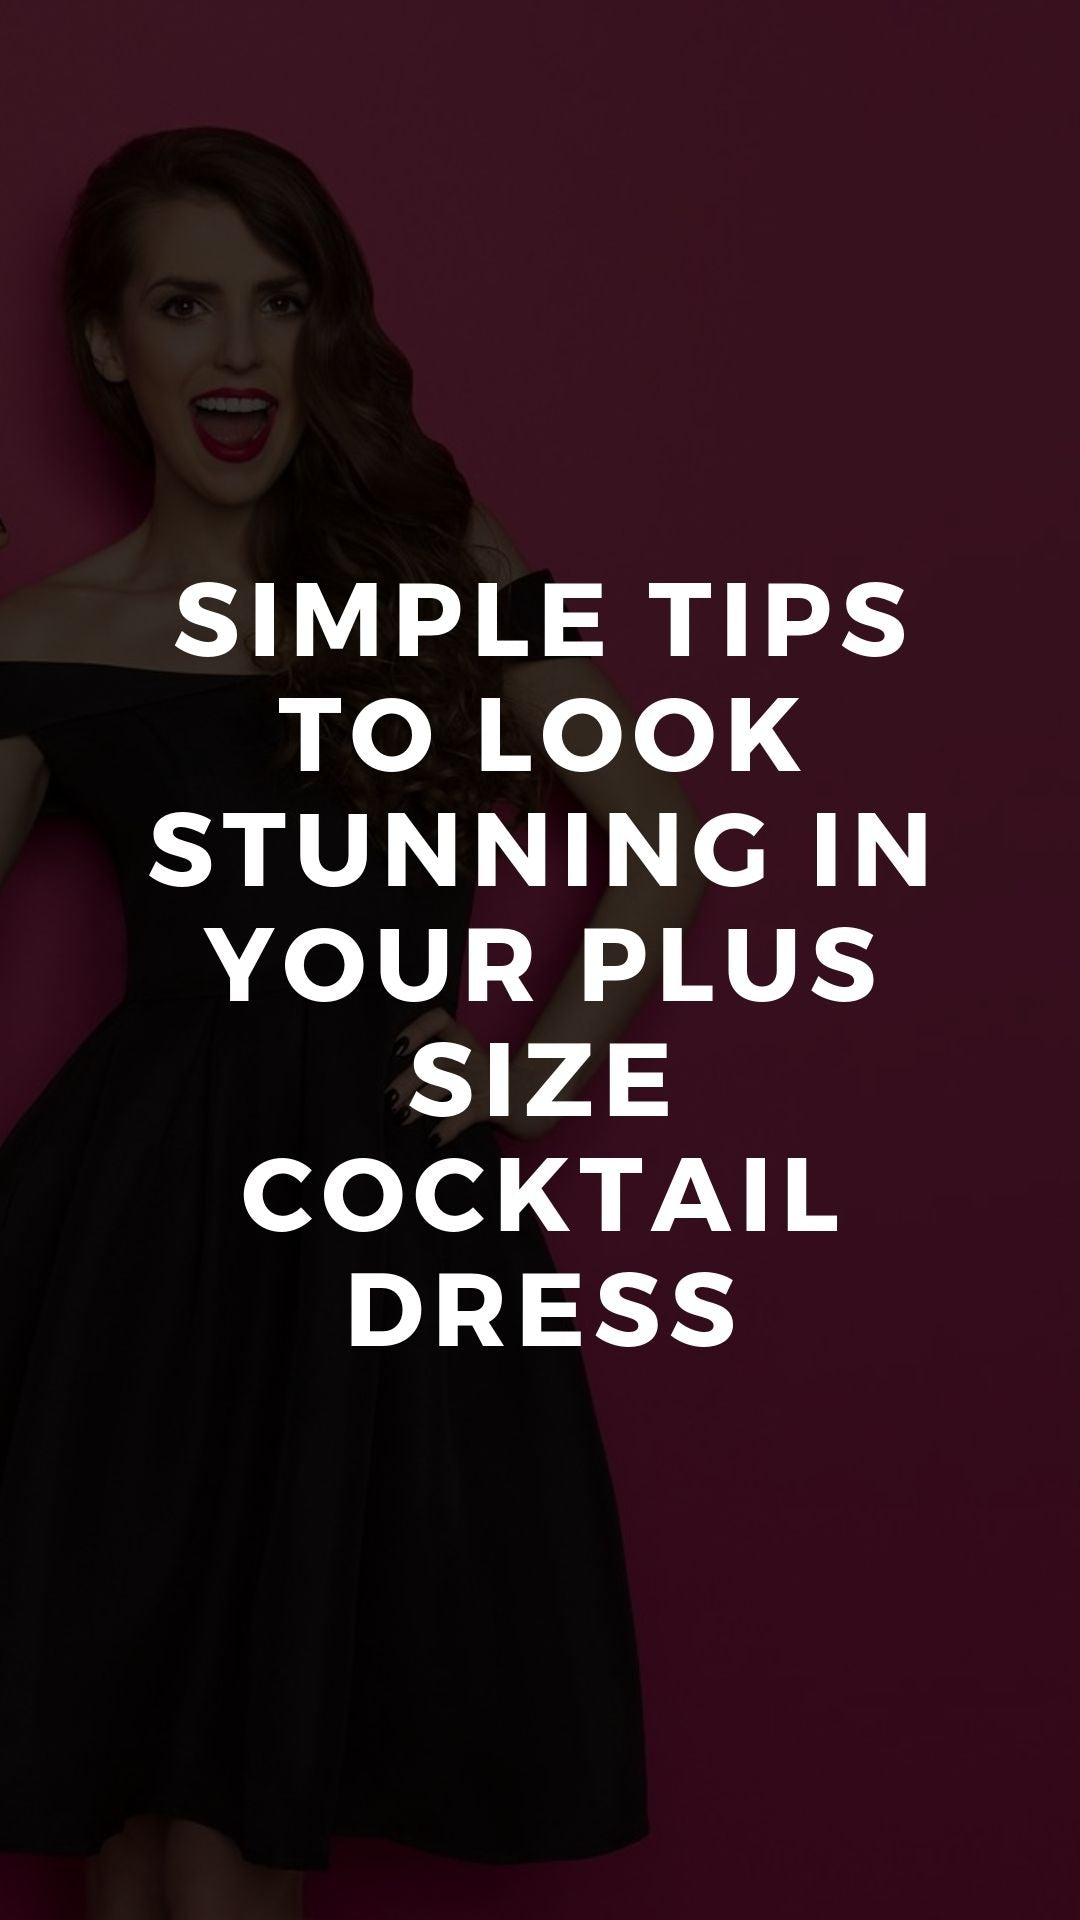 Simple Tips to Look Stunning In Your Plus Size Cocktail Dress